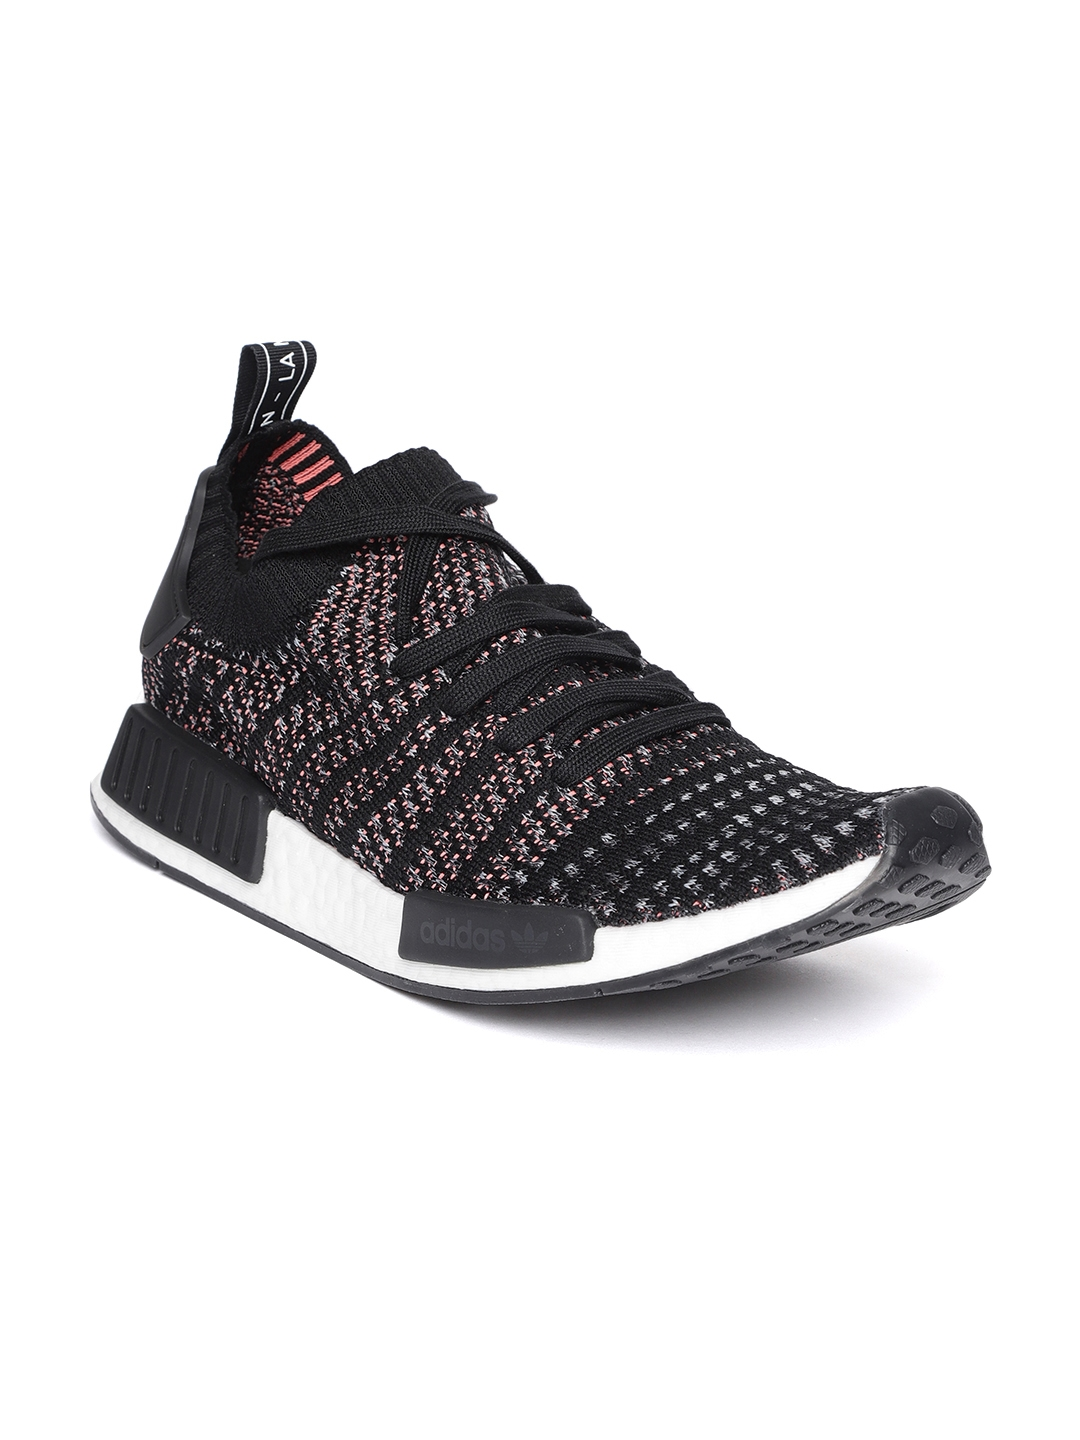 c03b5342e Buy ADIDAS Originals Men Black NMD R1 STLT Primeknit Sneakers ...